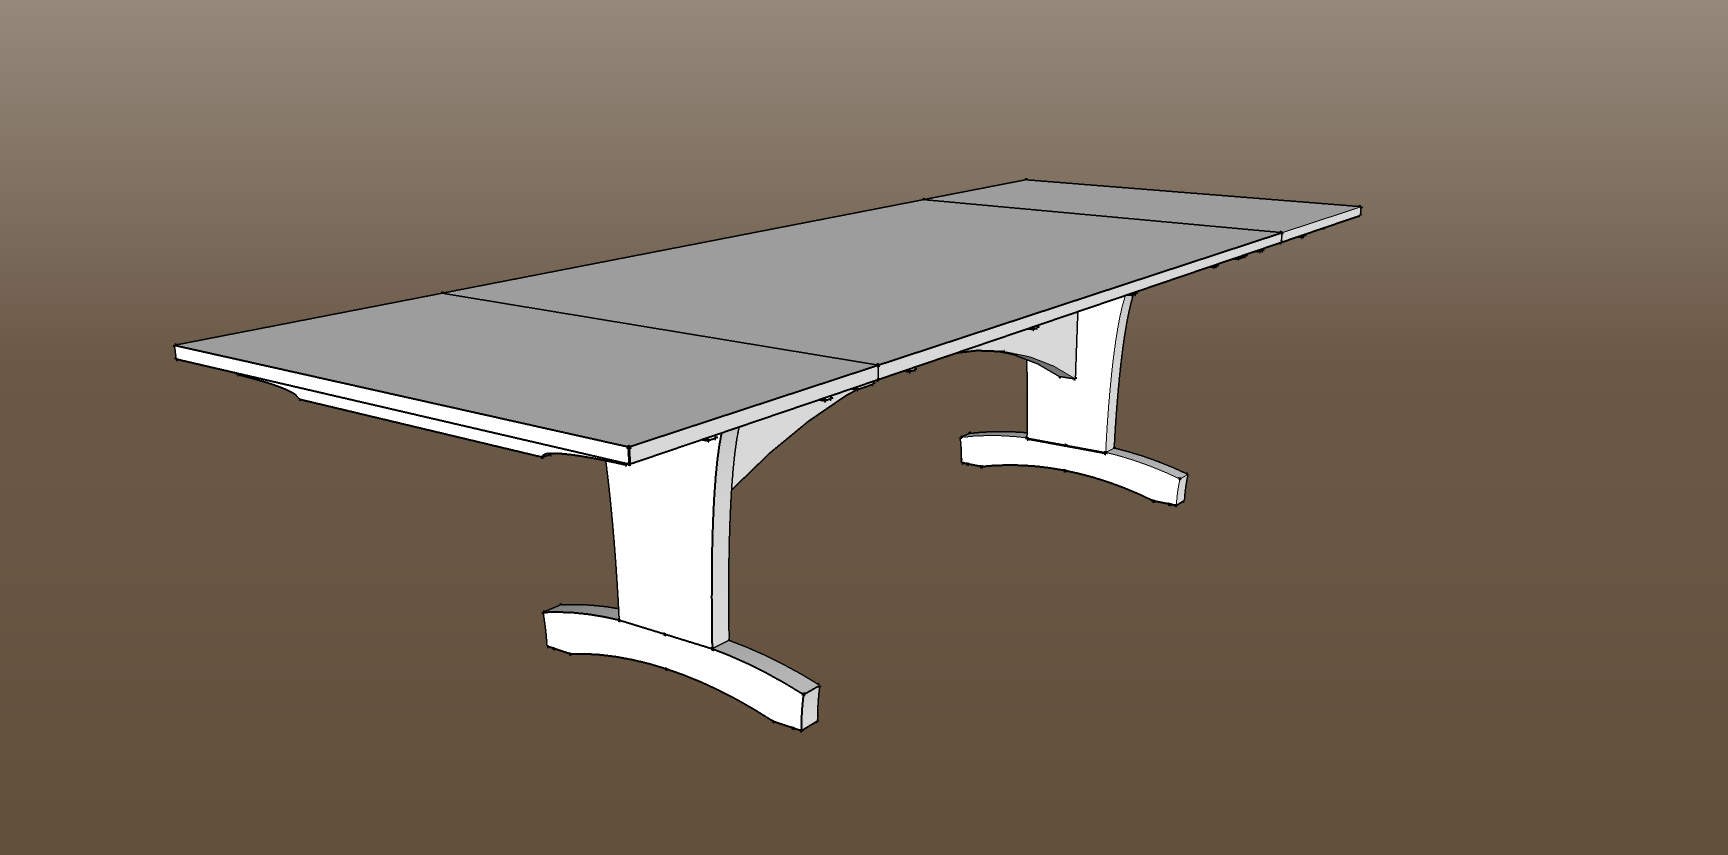 Incredible Trestle Dining Table Plans 1728 x 855 · 27 kB · png